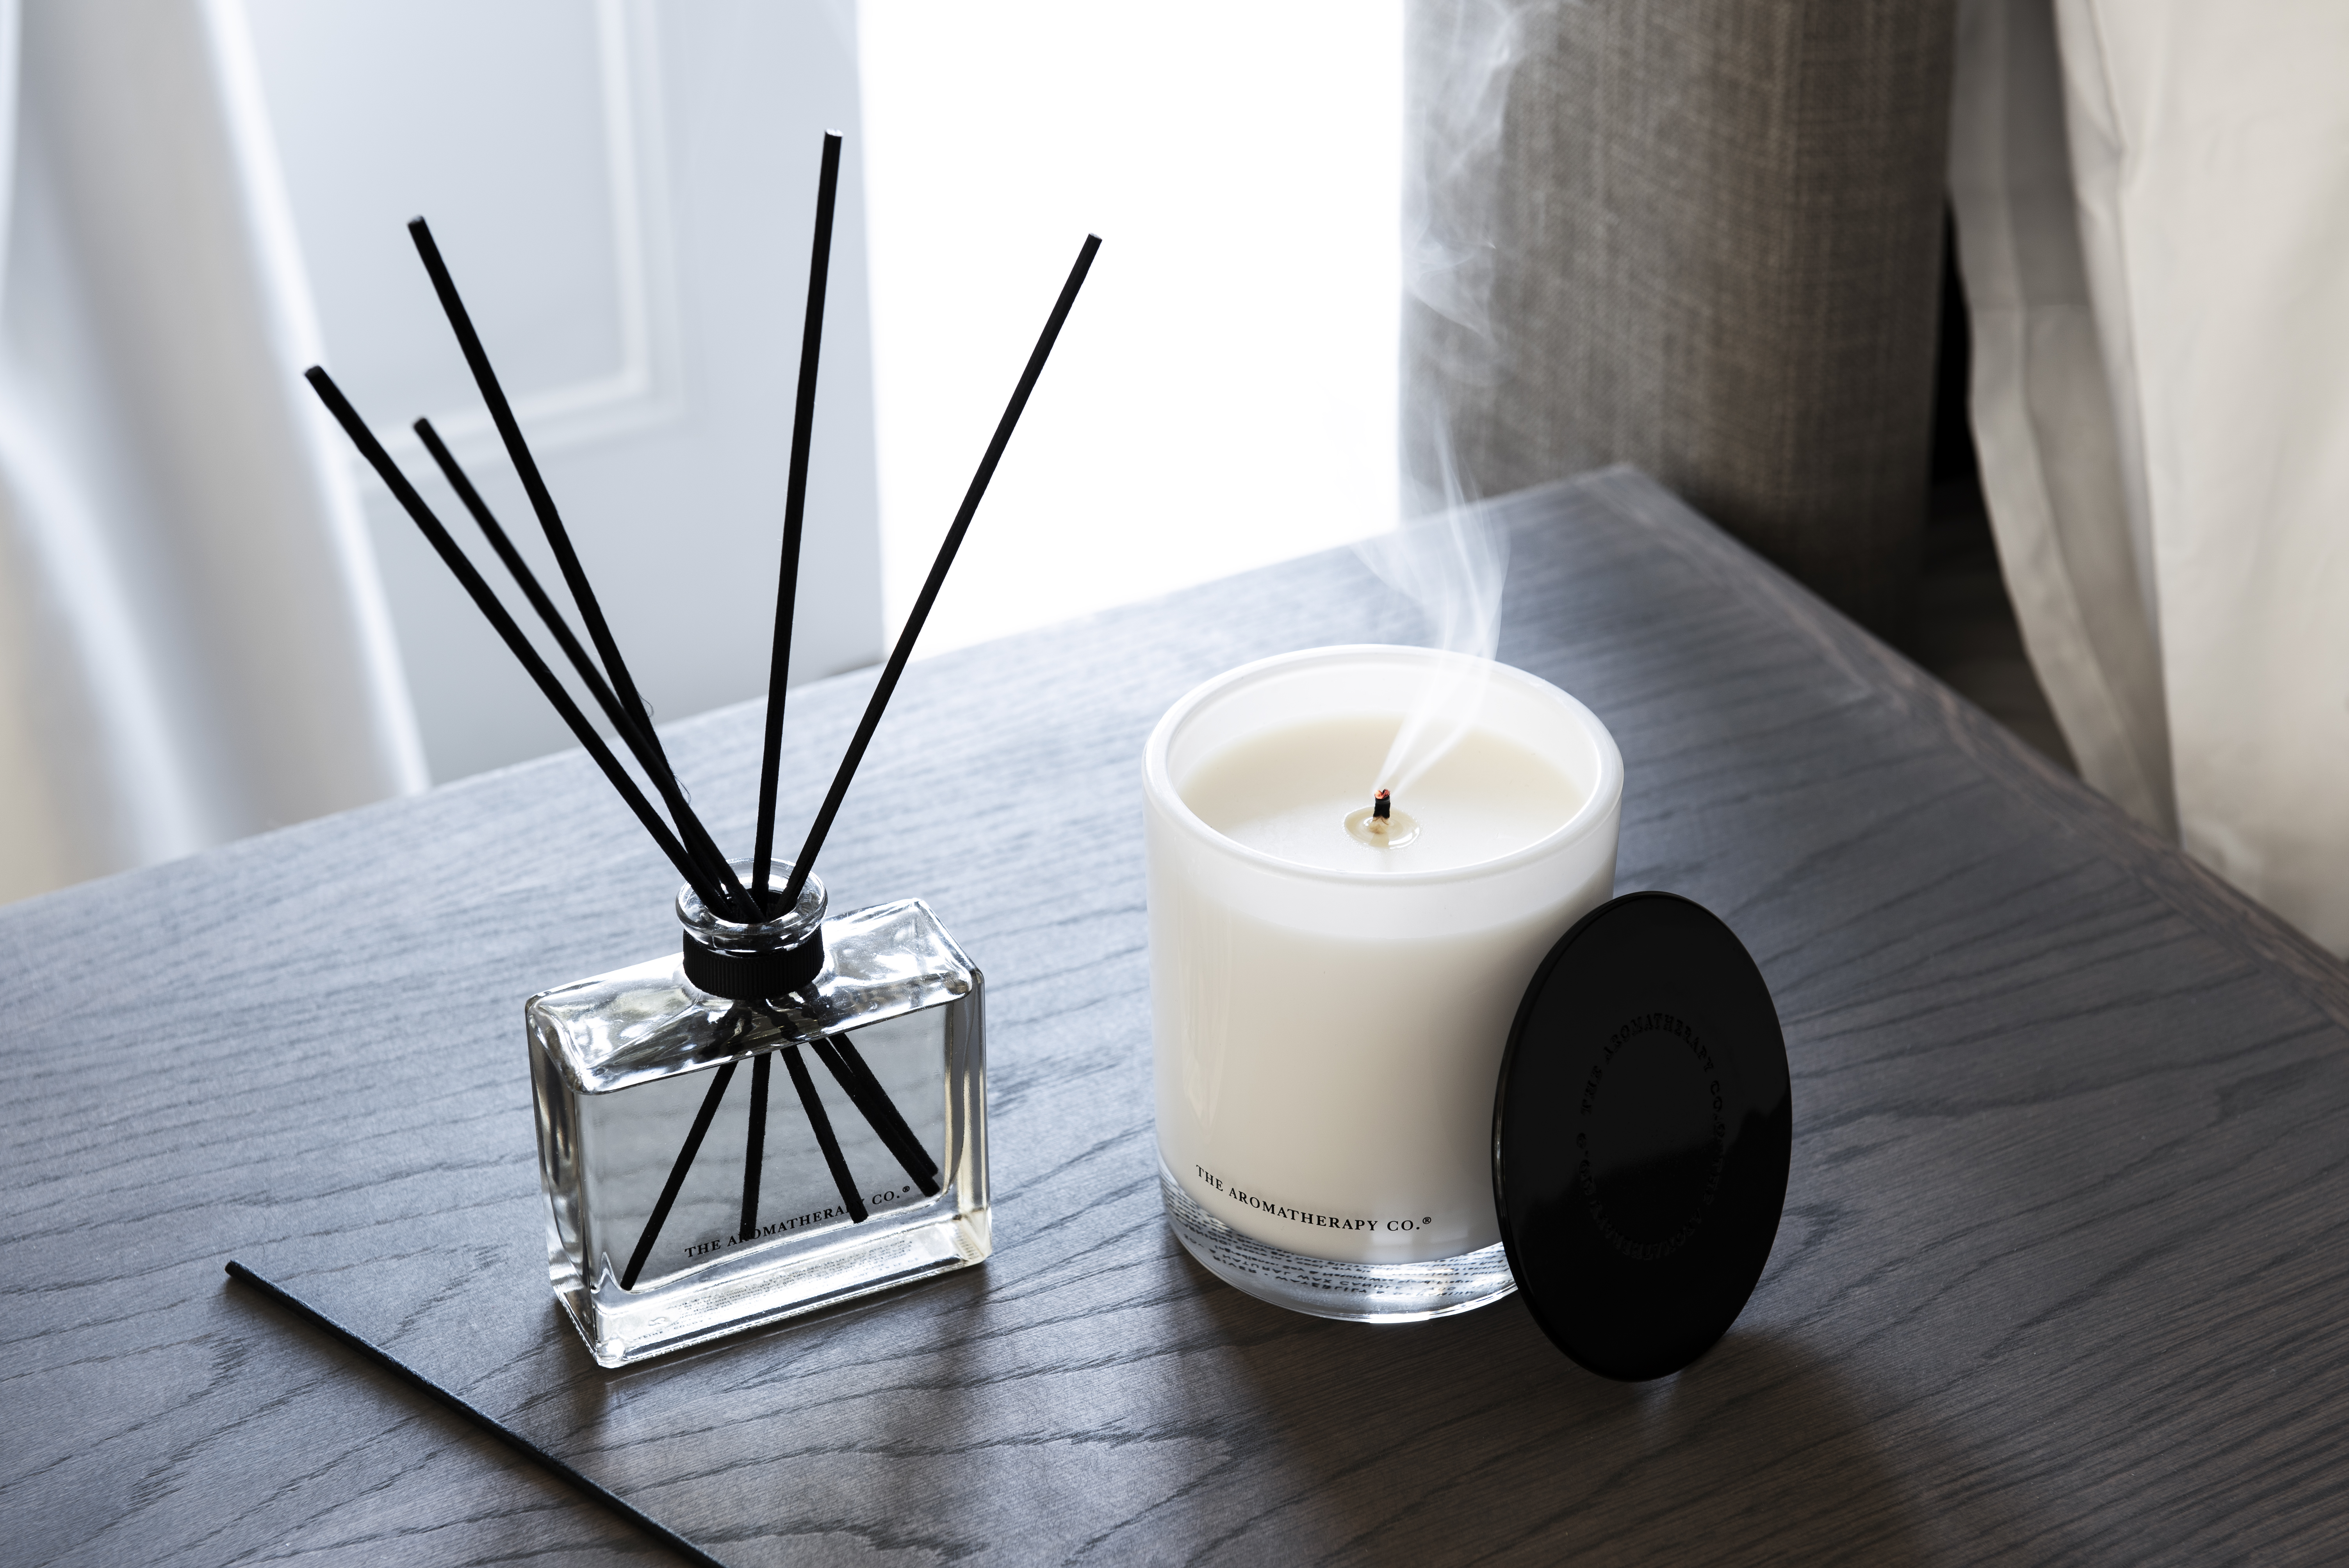 RESTORE CALM WITH FRAGRANCE